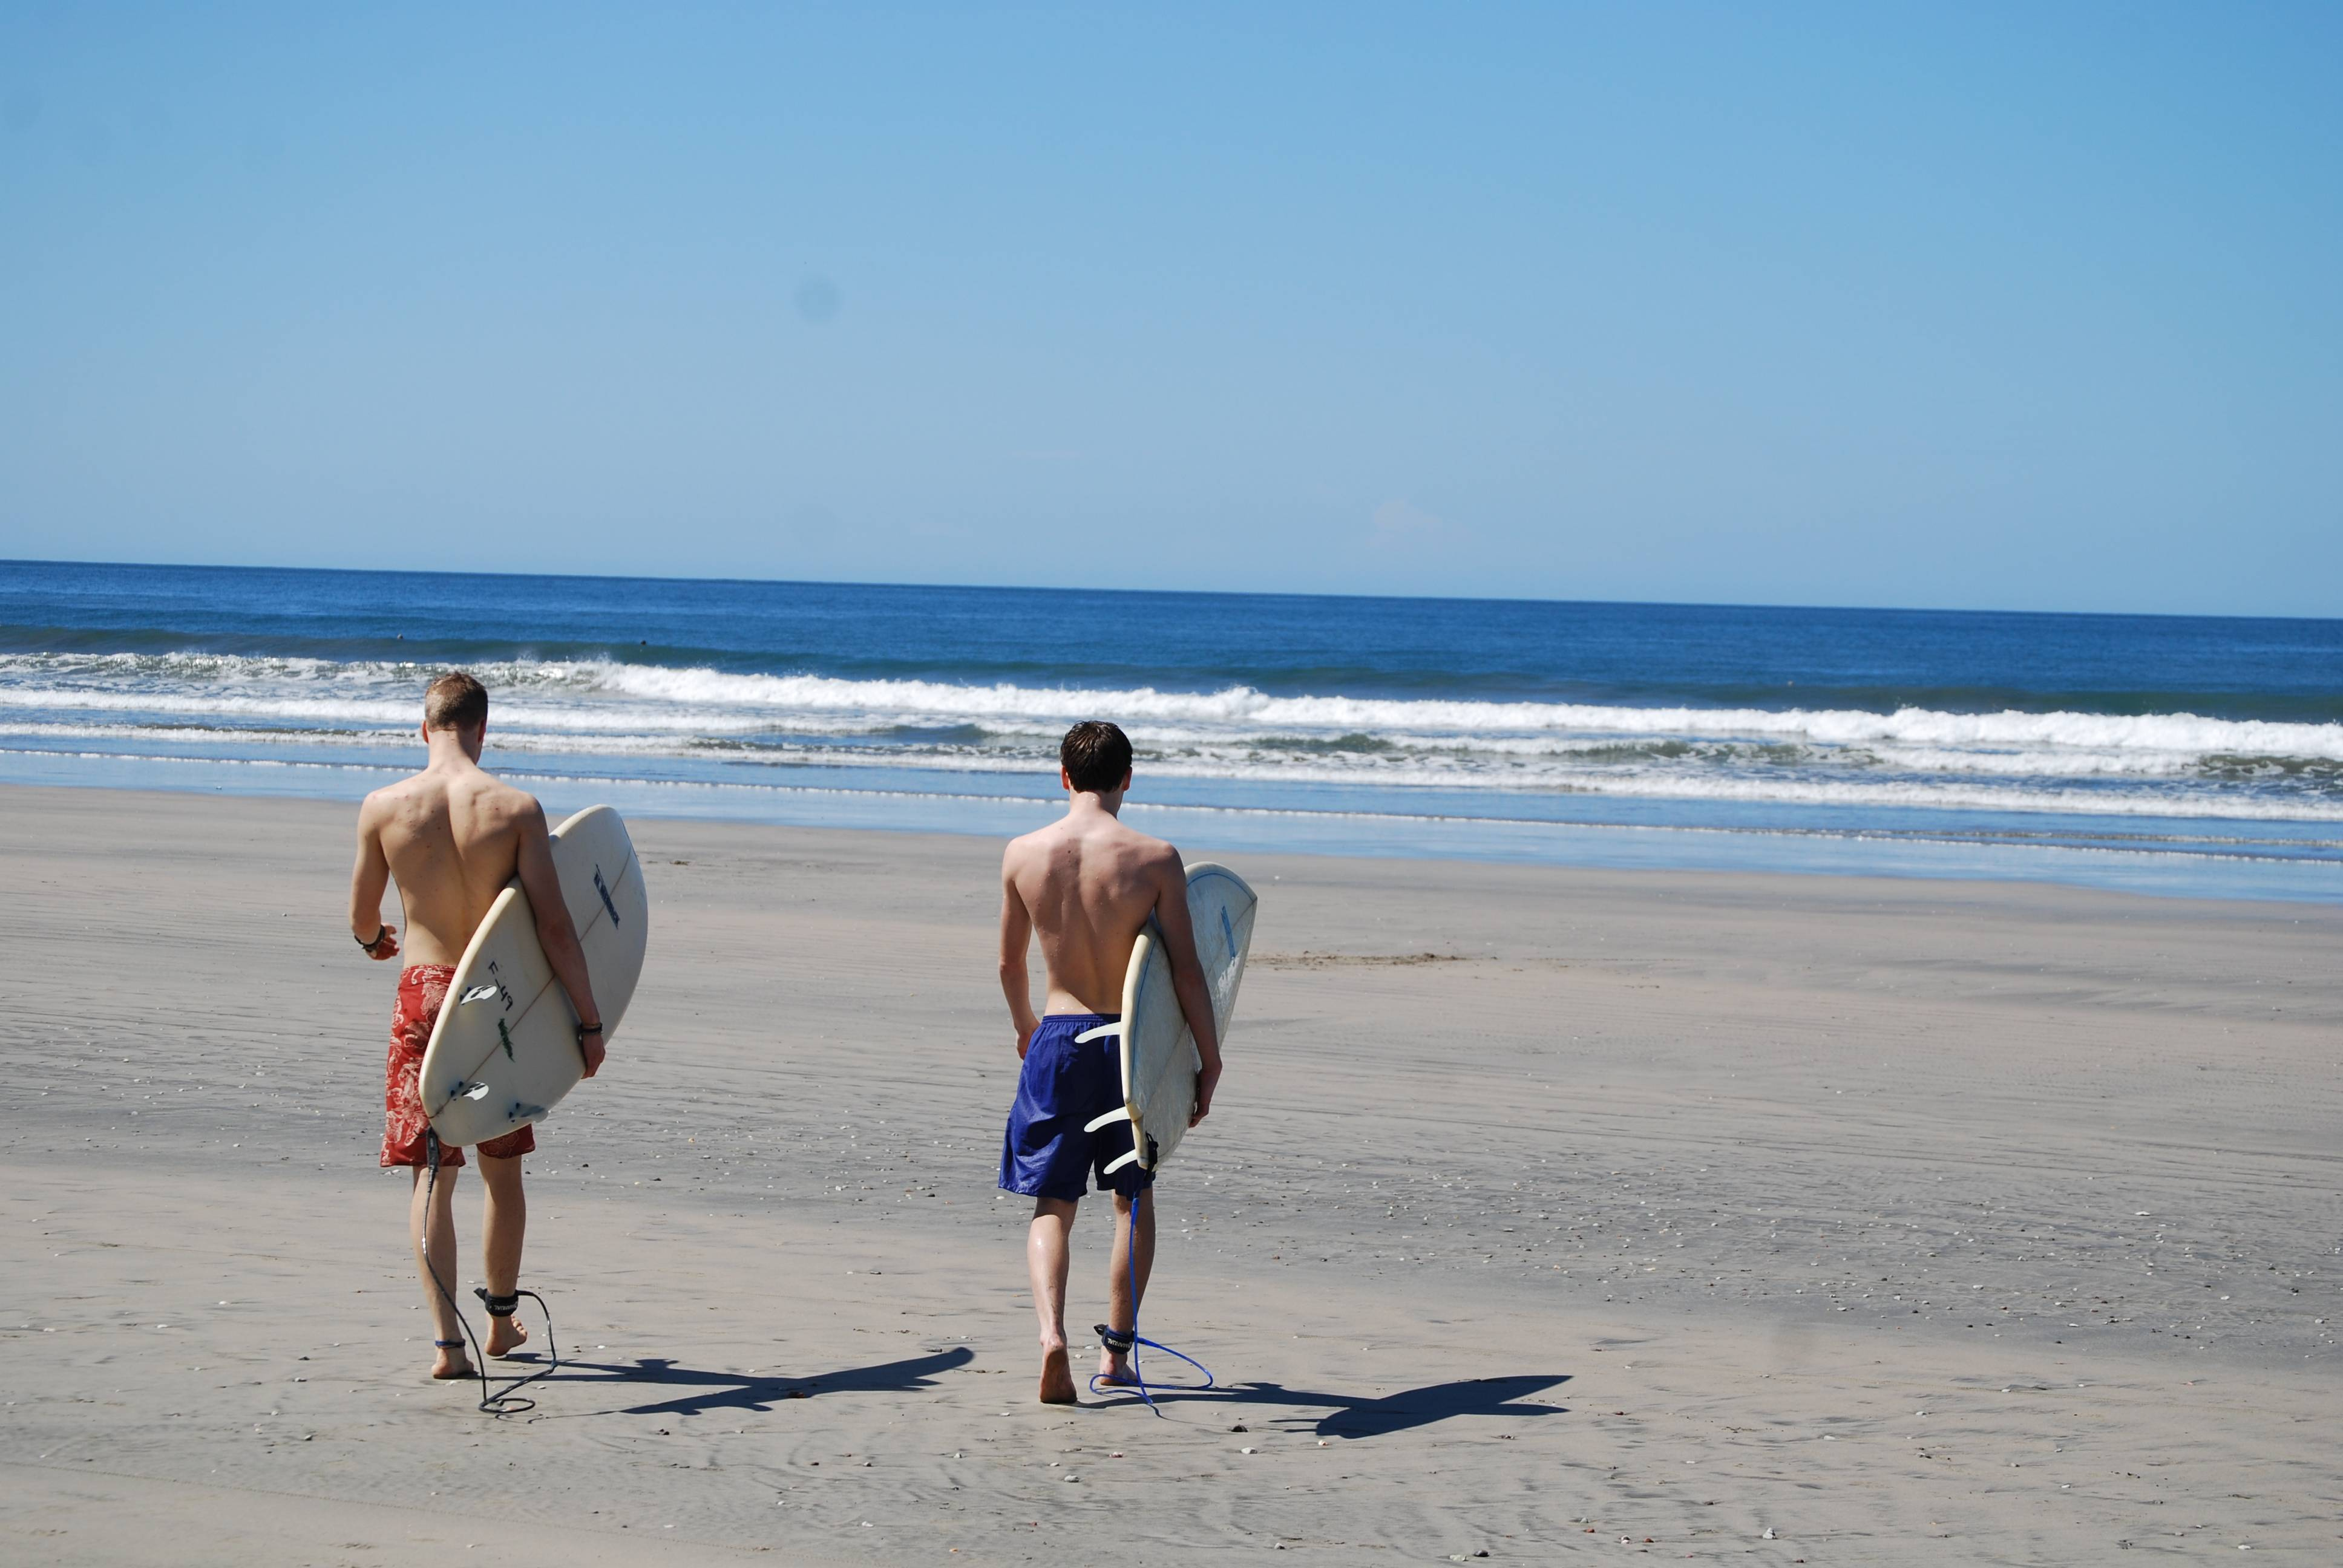 Liam Godfrey-Jolicoeur and Jacob Dombek, of N. Ferrisburg, Vt., head out to surf at Playa Guiones in Nosara, Costa Rica.